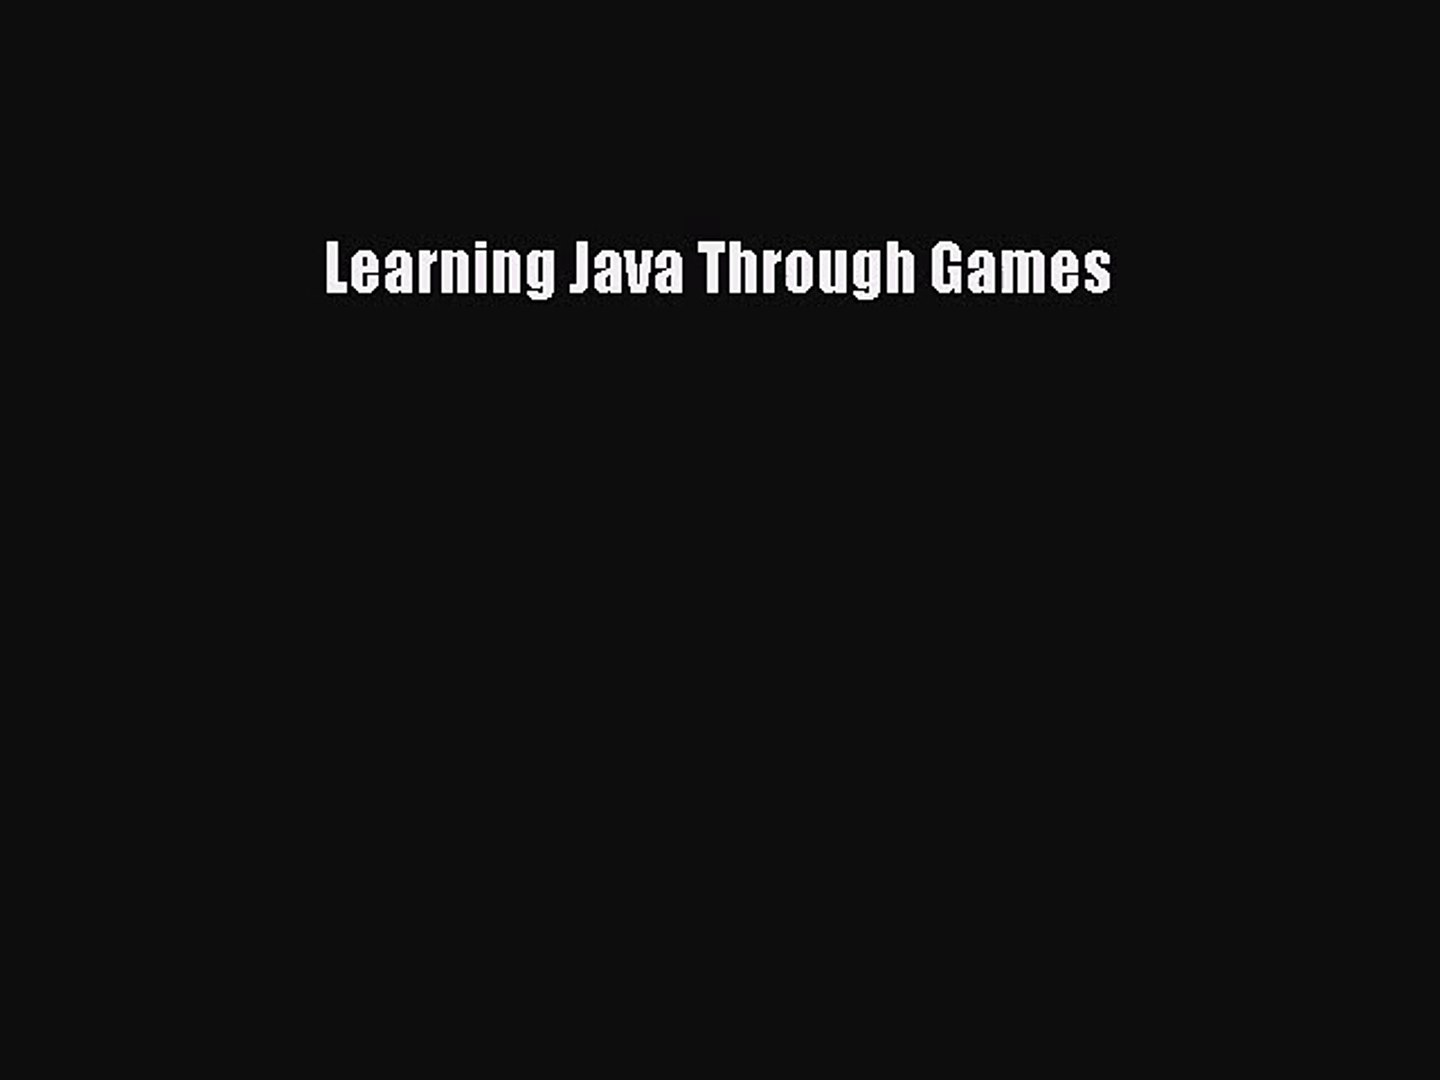 Learning Java Through Games [PDF Download] Learning Java Through Games# [Download] Full Ebook